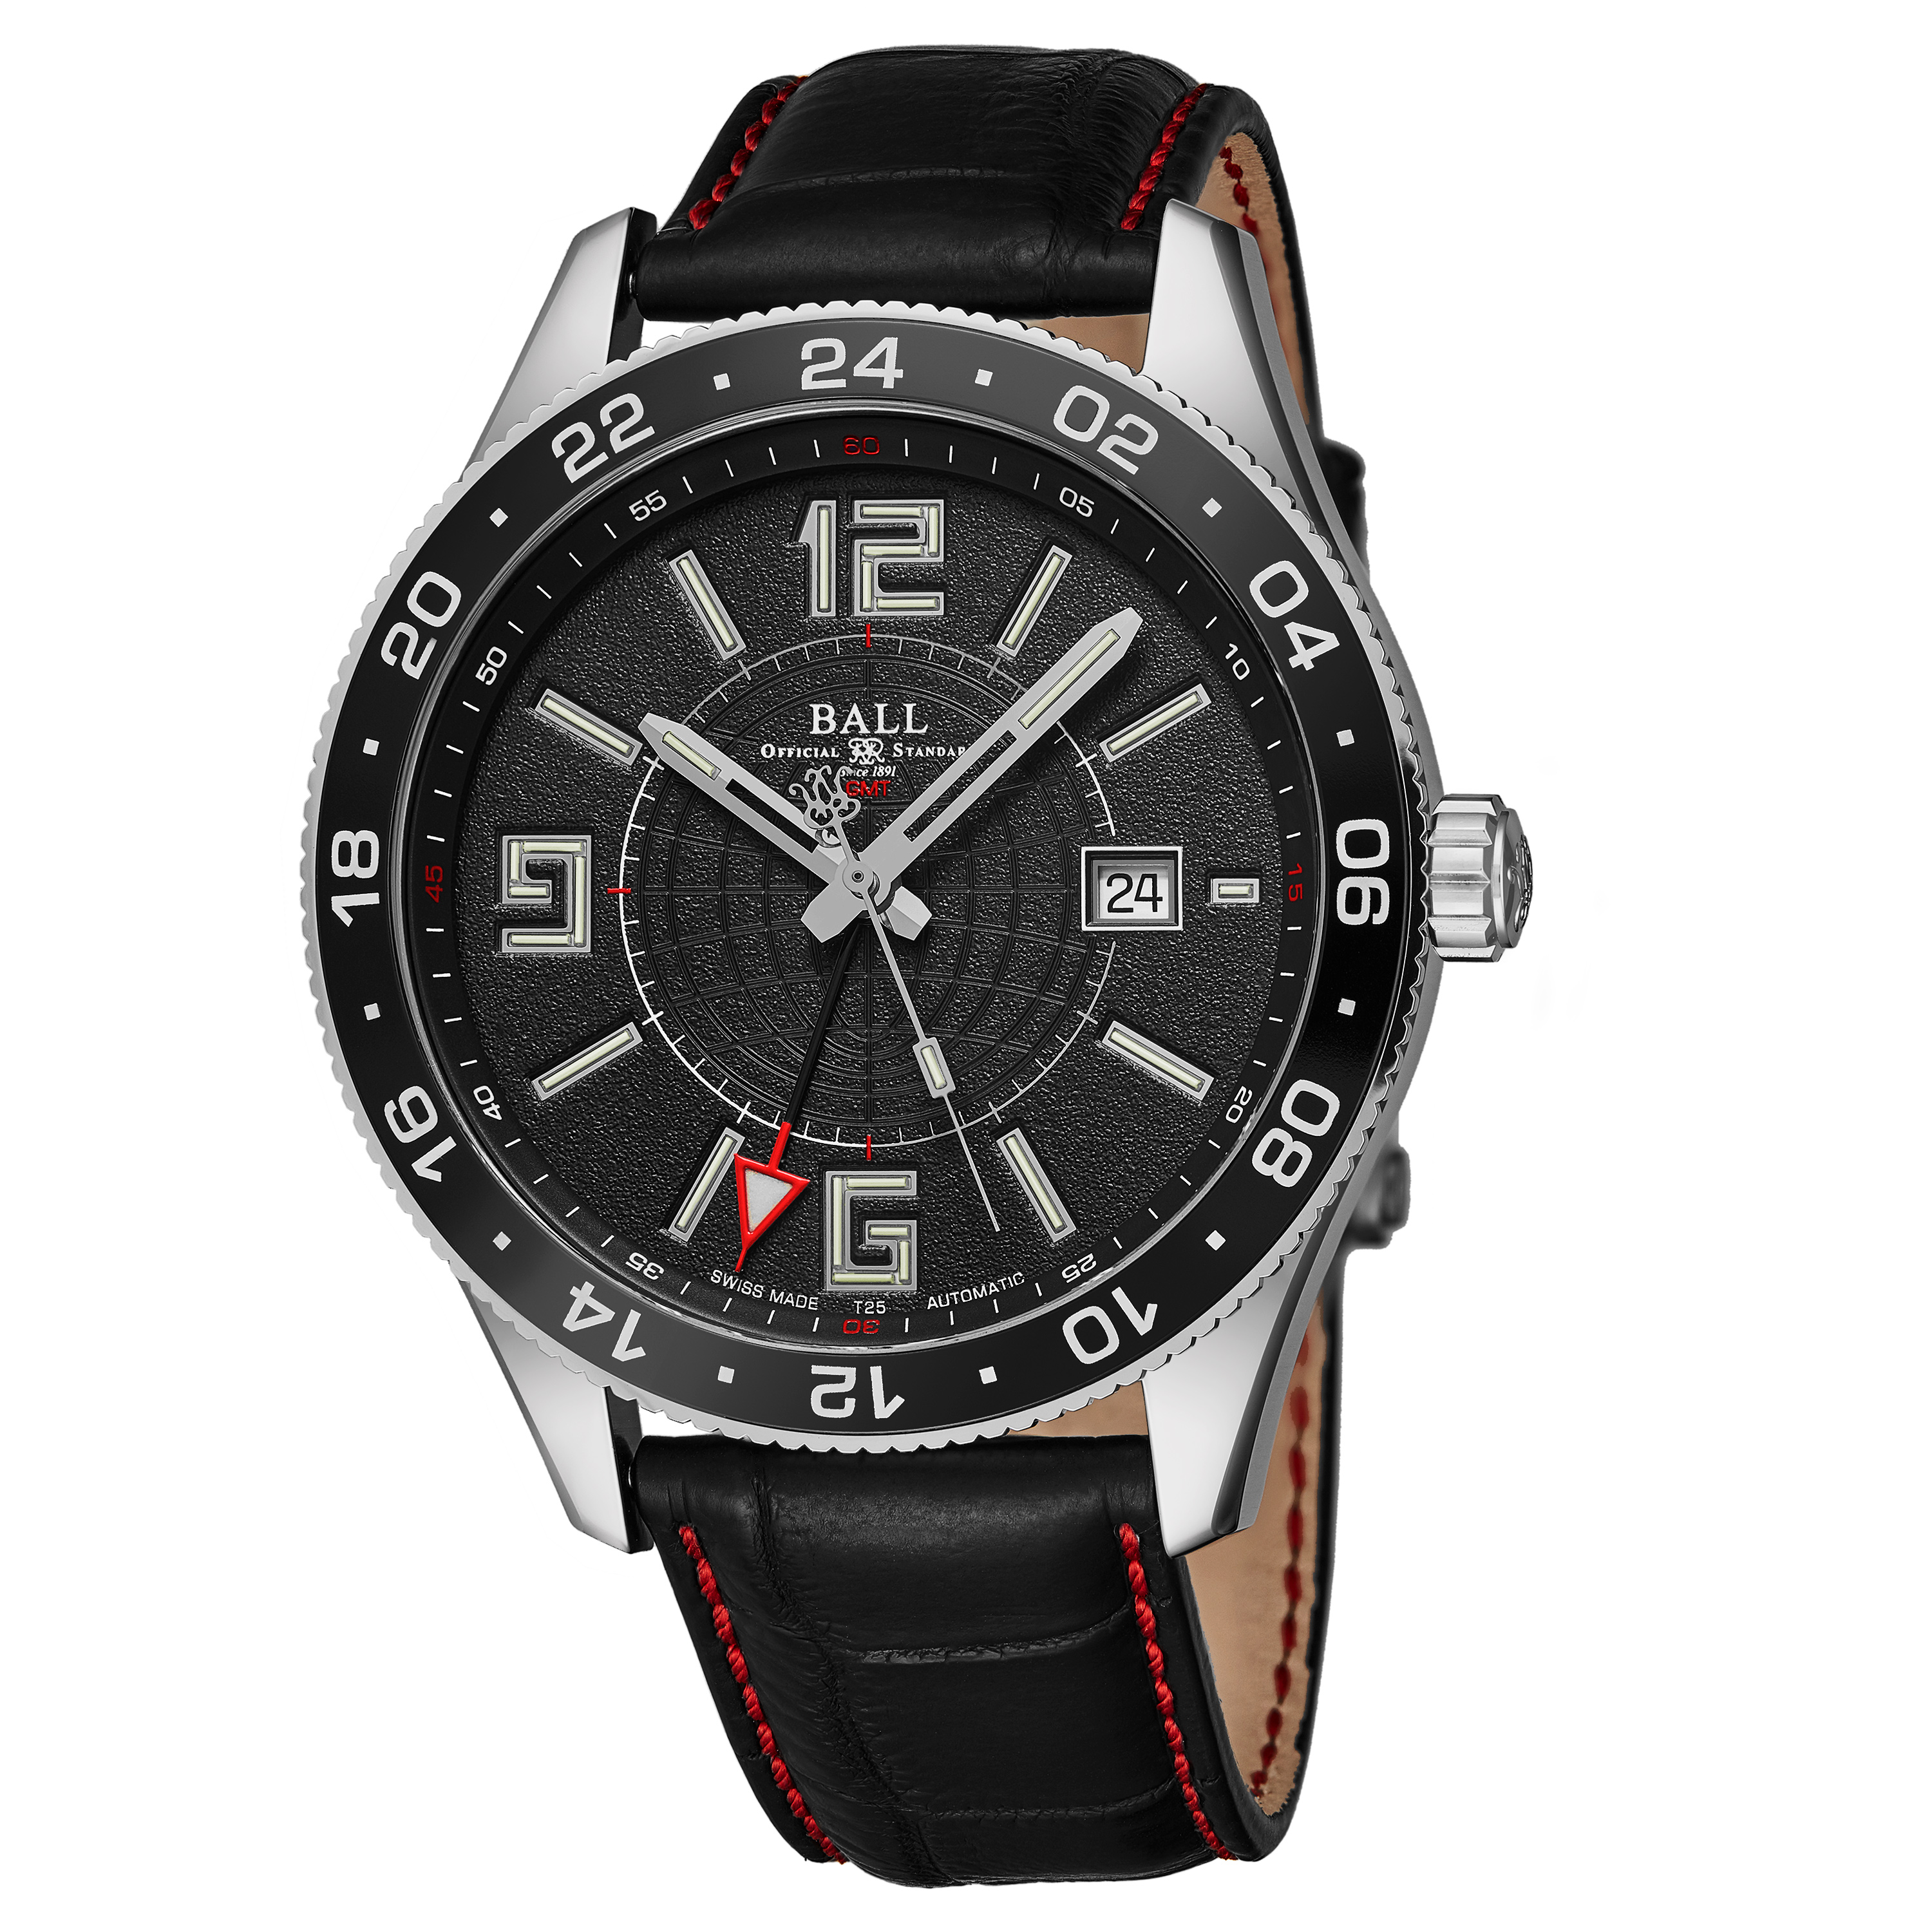 Ball Engineer Master II Men's Watch Model GM3090C-LLAJ-BK